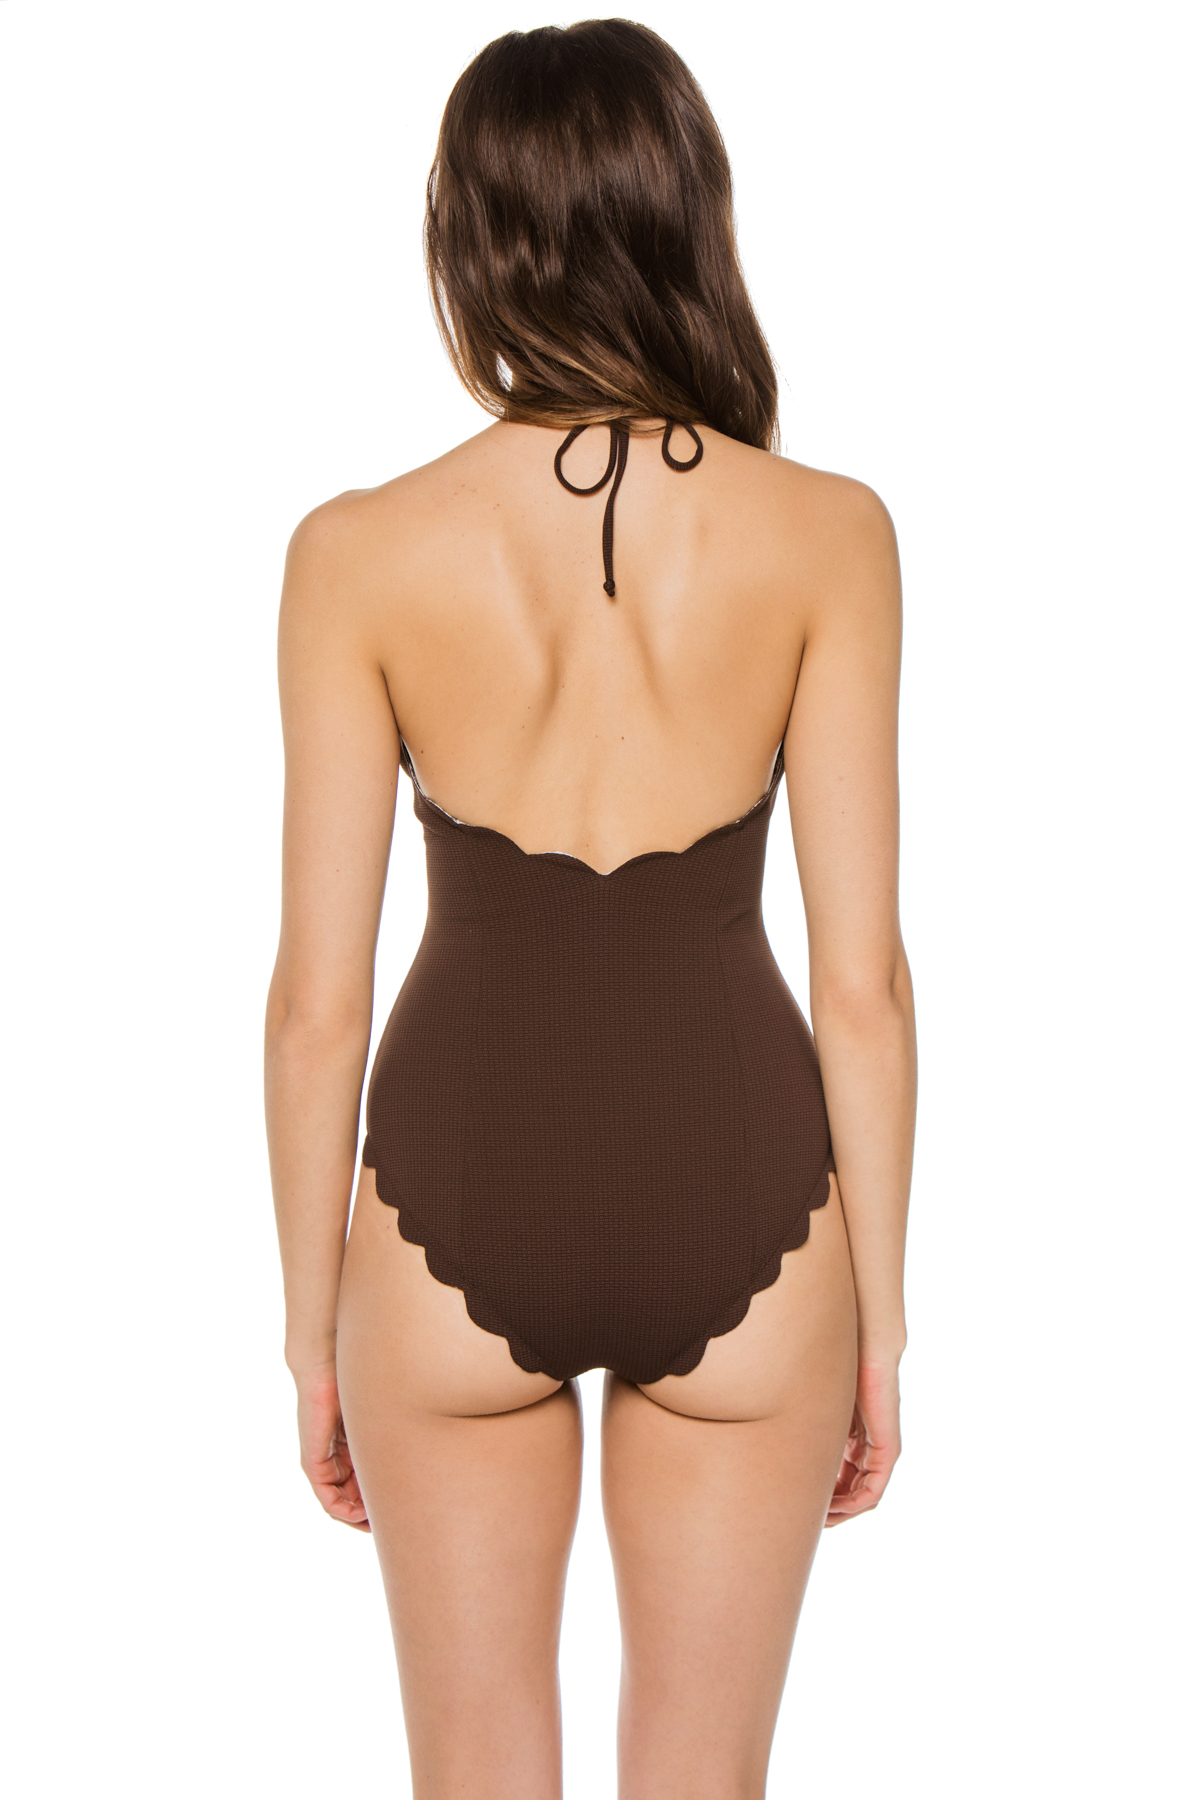 Reversible Plunge Halter One Piece Swimsuit - Solid S'Mores 3